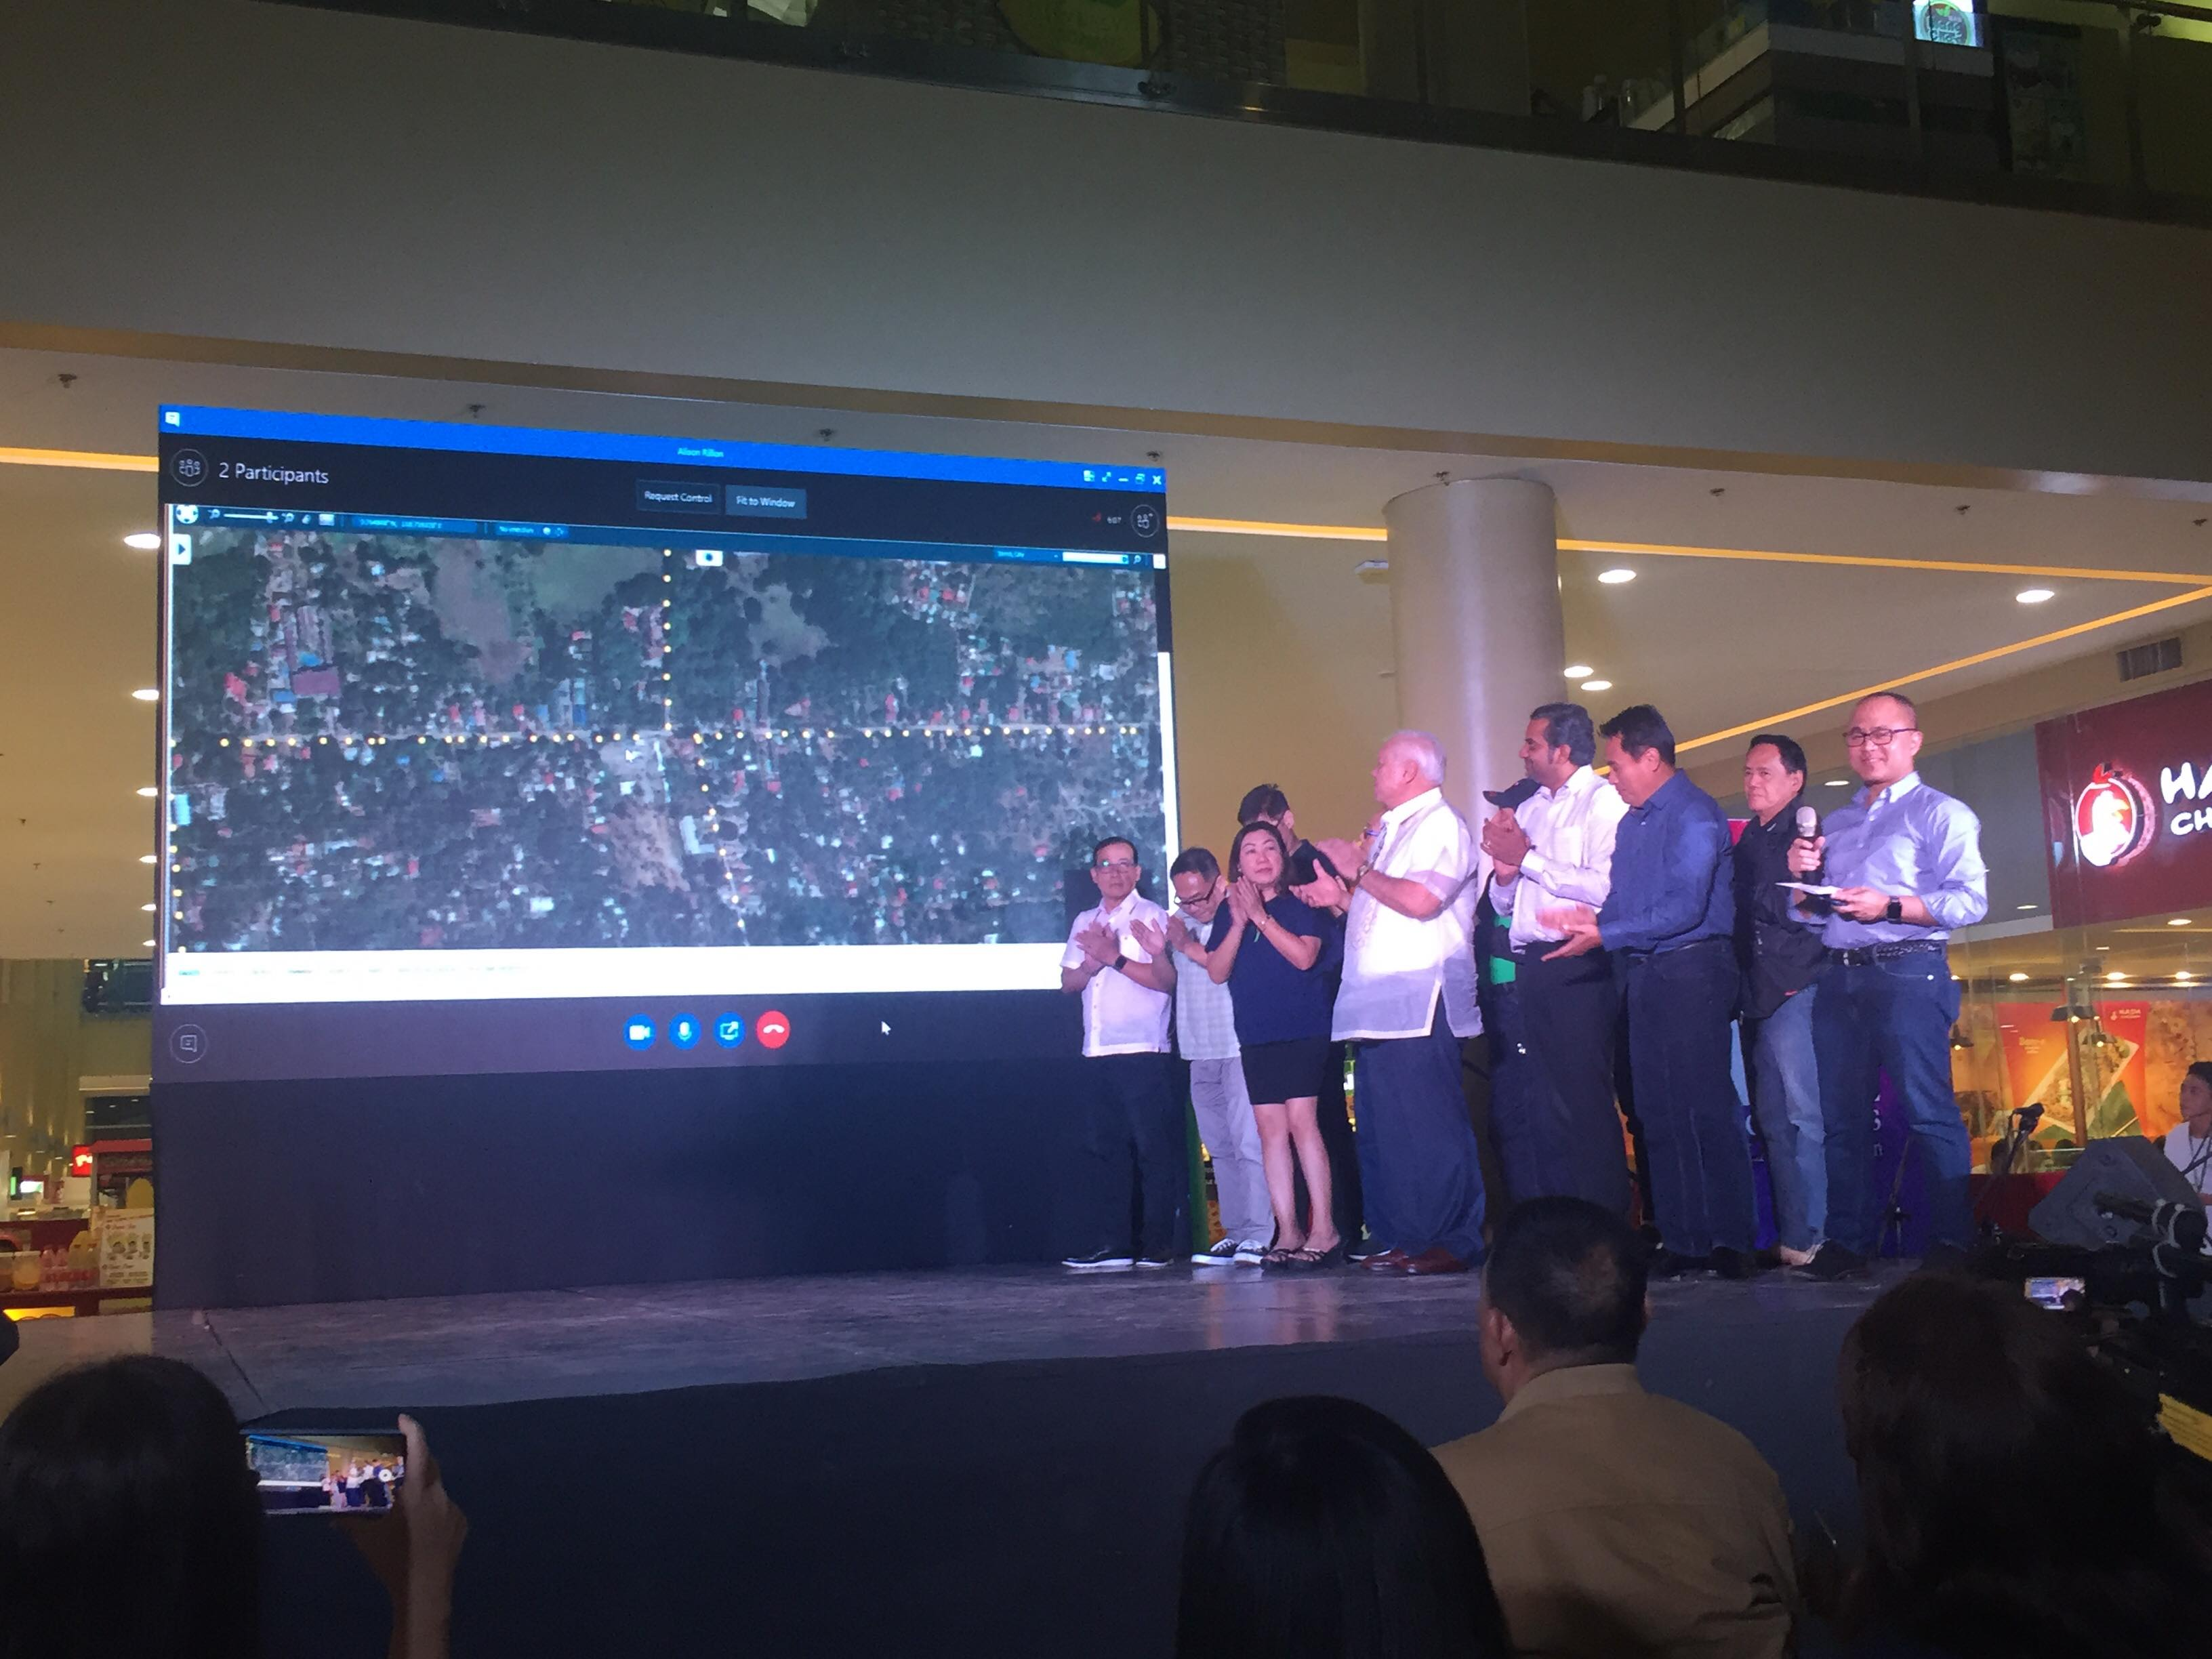 Puerto Princesa City Mayor Lucilo Bayron together with other city officials lead the inauguration of the country's first smart city-enabled lighting system, July 1, at Robinson's Place, Puerto Princesa City